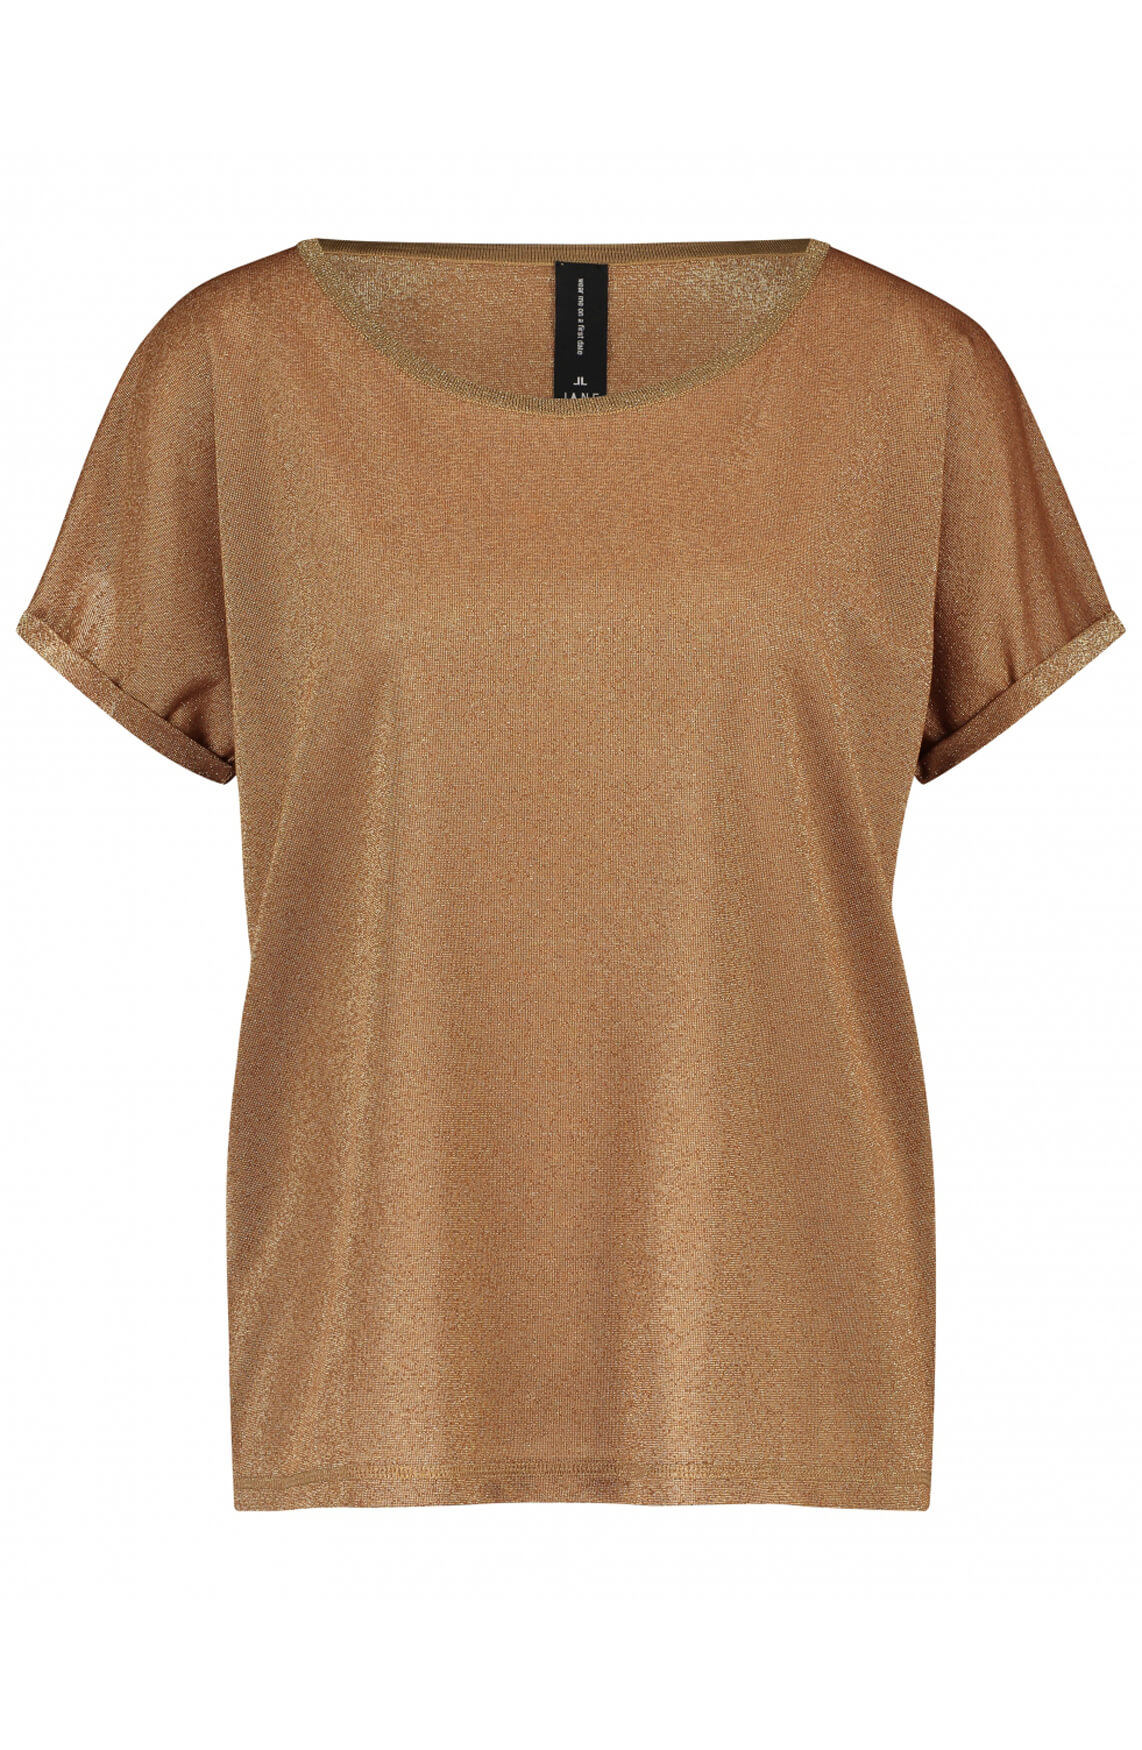 Jane Lushka Dames Hope glitter shirt Bruin